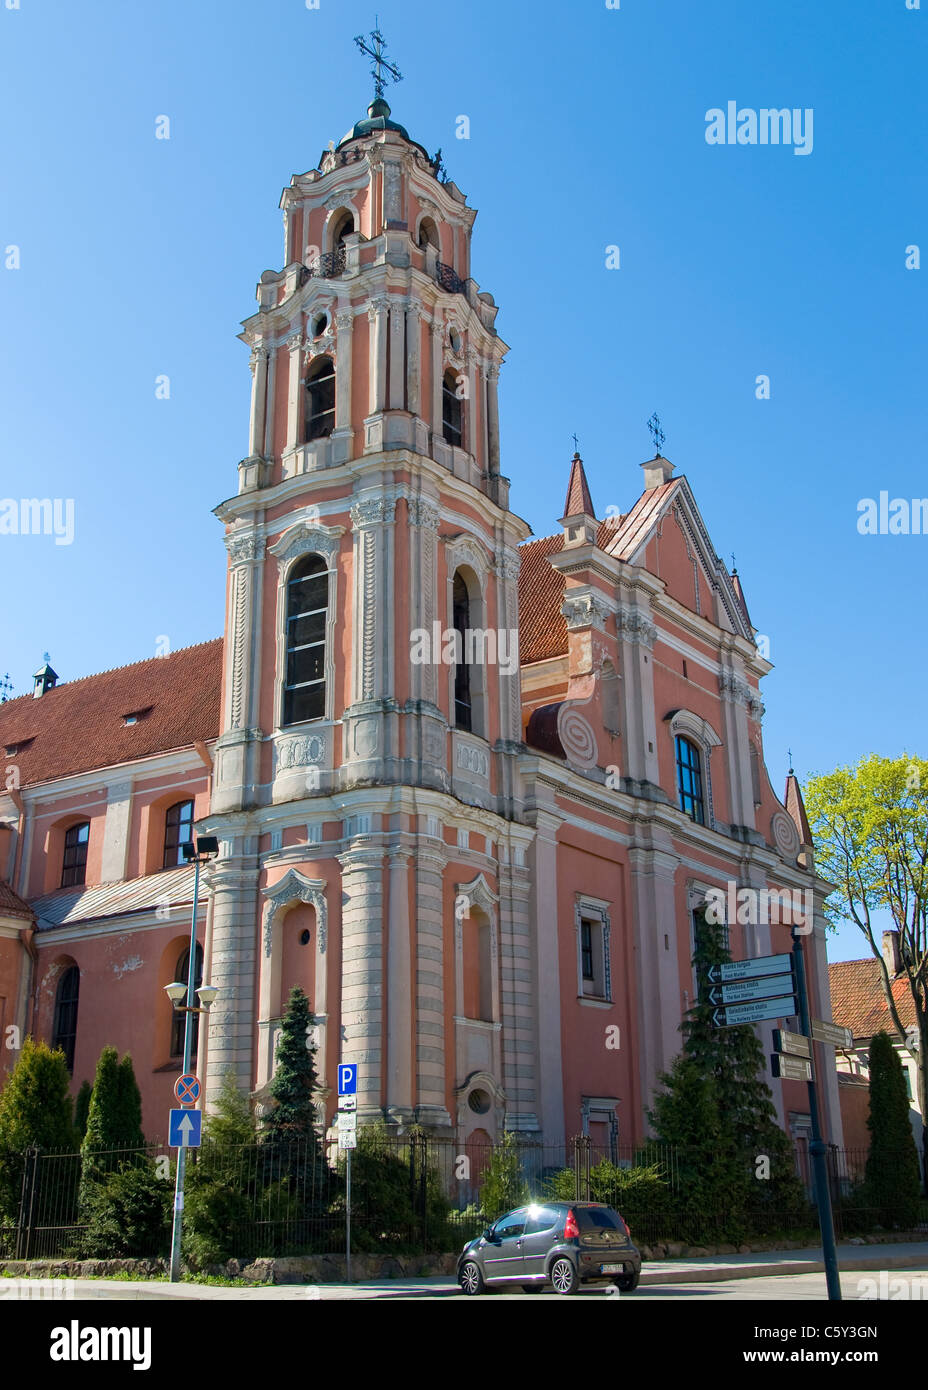 Baroque Church, Vilnius, Lithuania - Stock Image